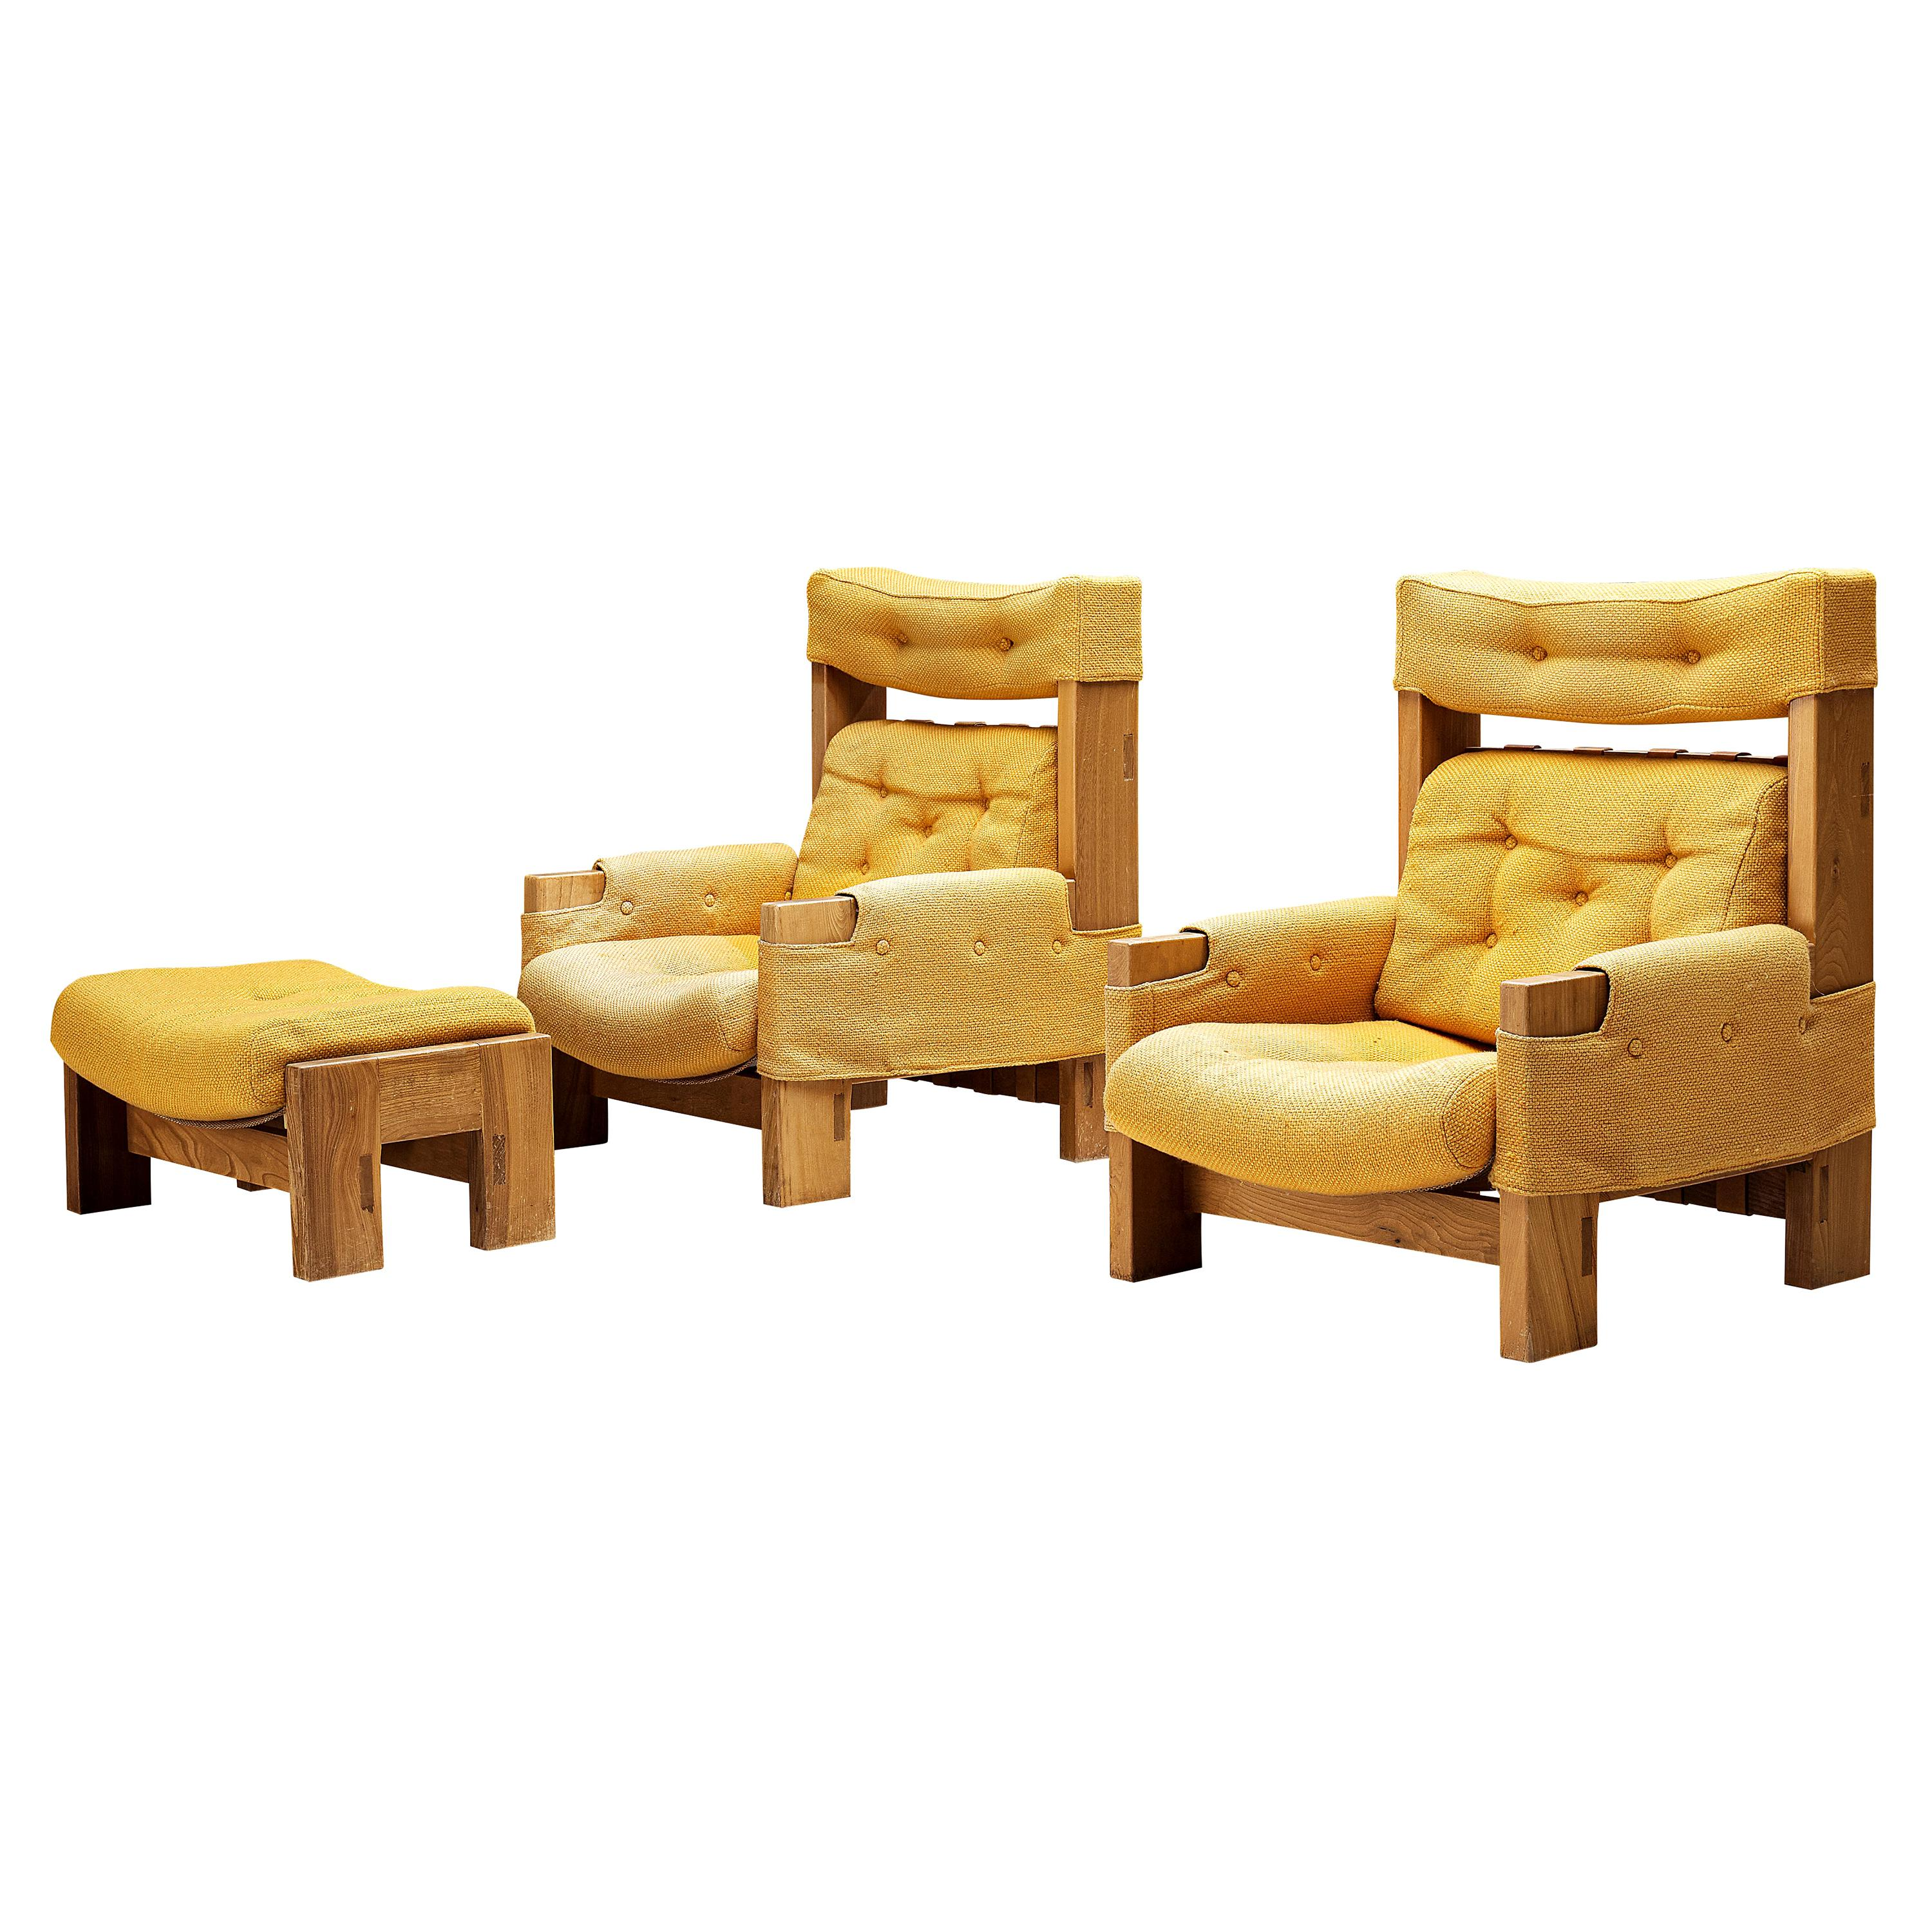 Maison Regain Pair of Lounge Chairs in Elm